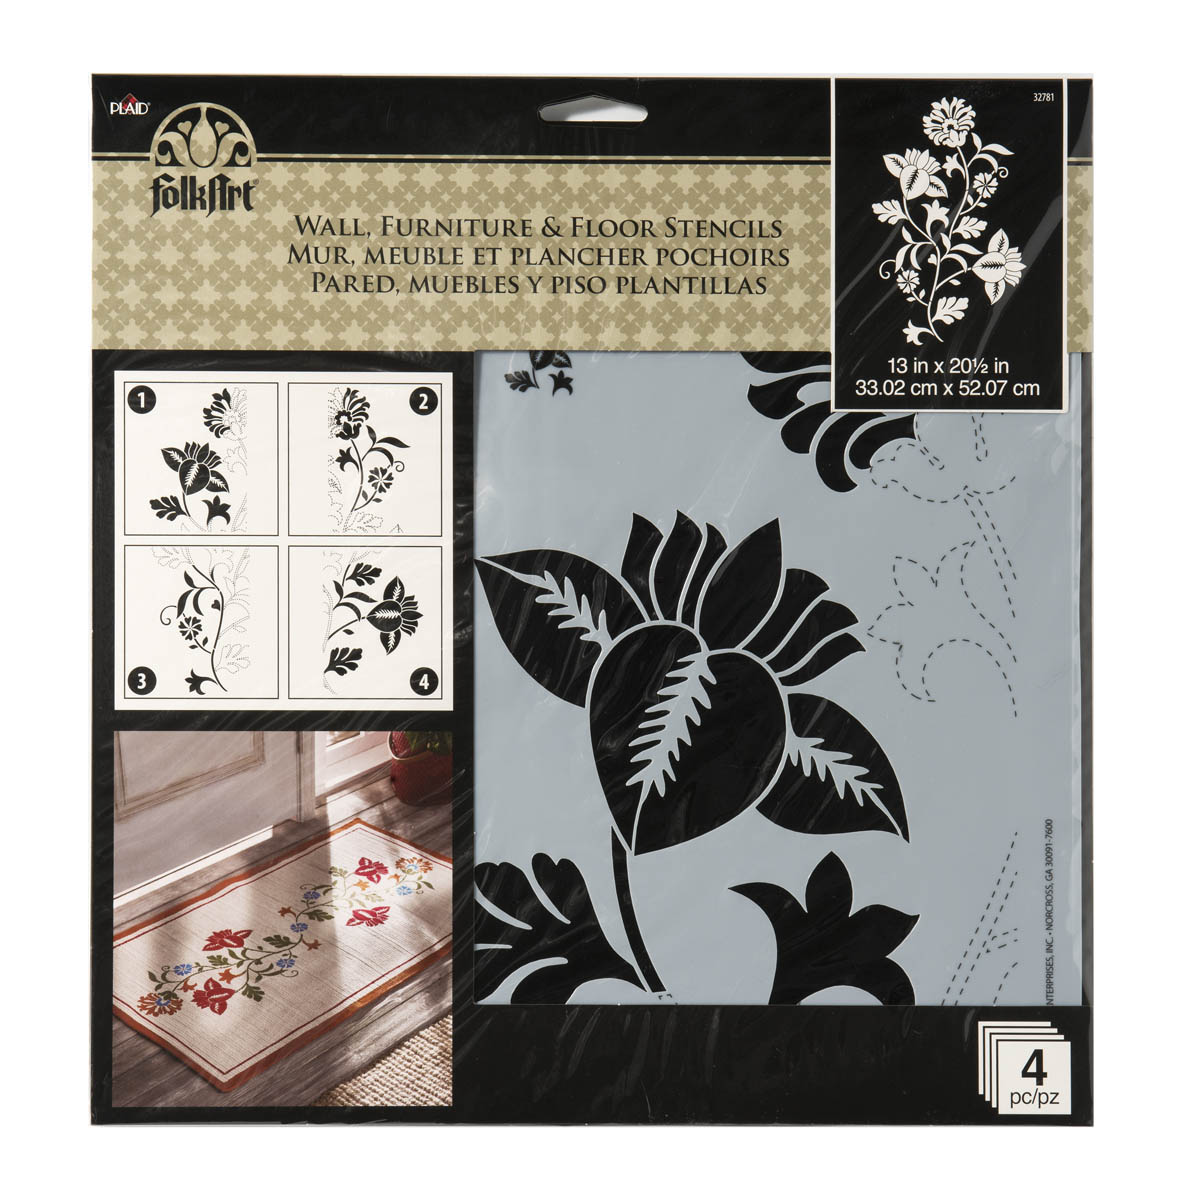 FolkArt ® Painting Stencils - Wall, Floor & Furniture - Climbing Floral - 32781